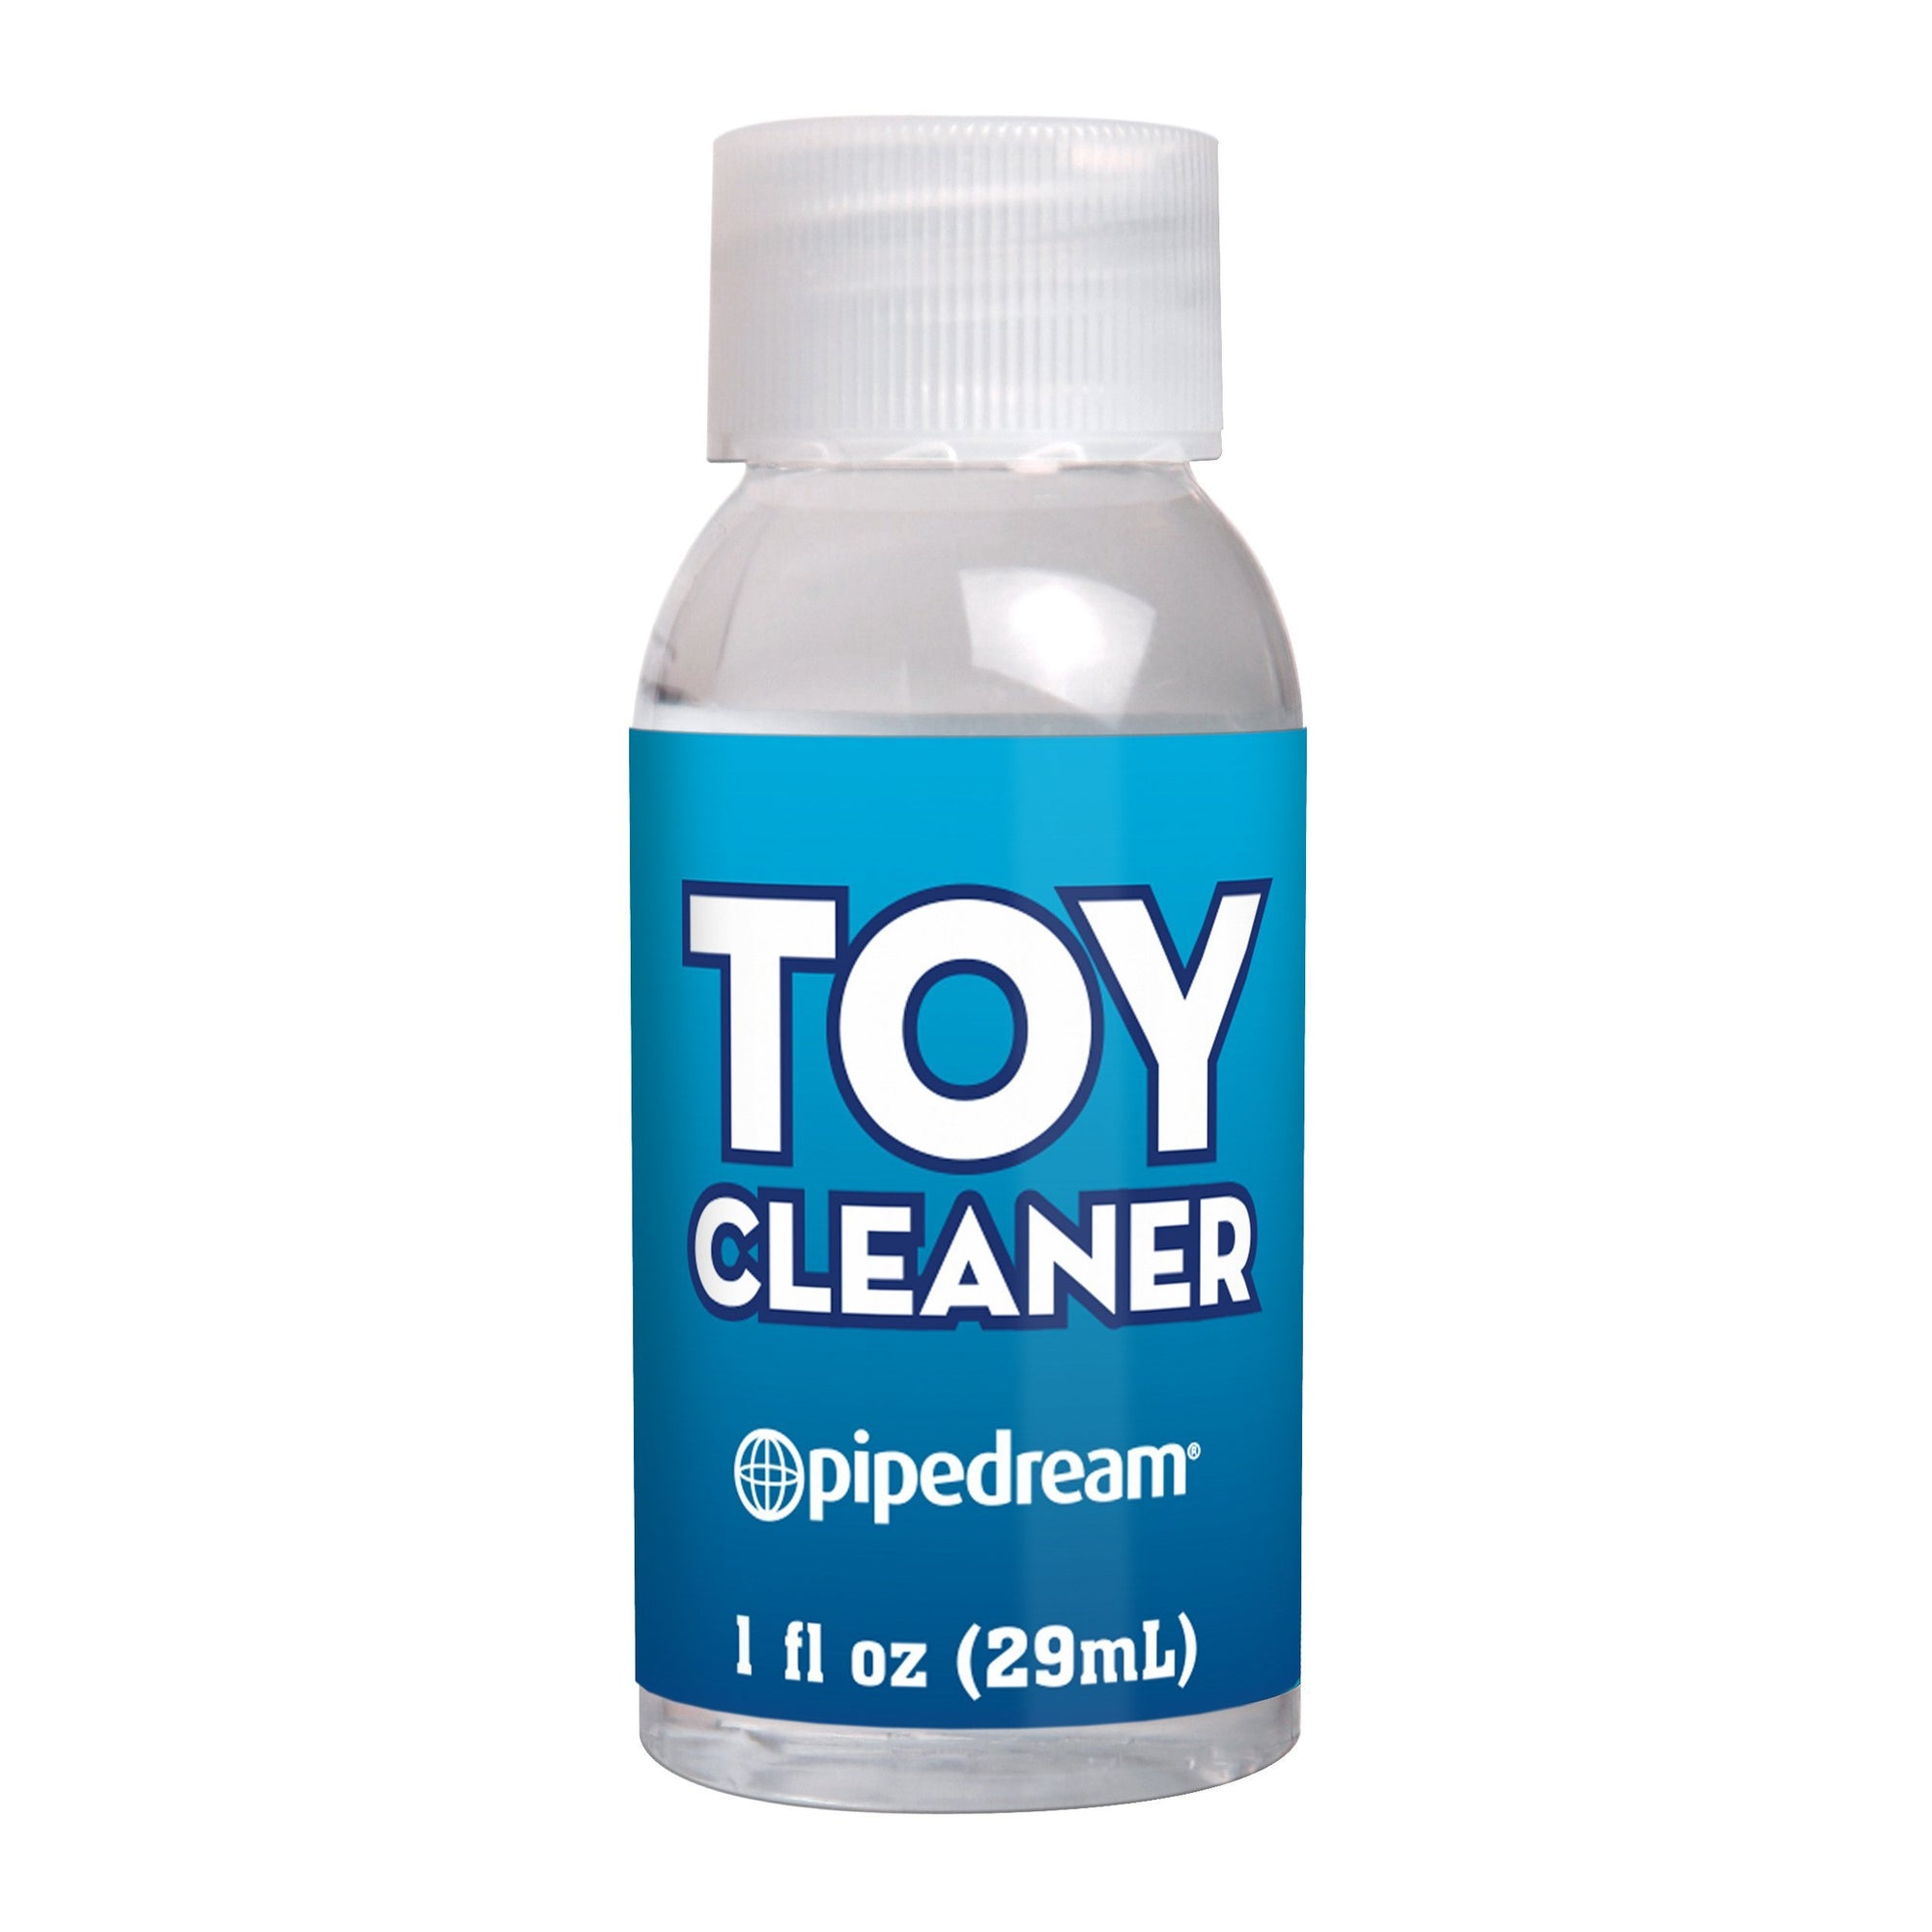 Pipedream - Toy Cleaner 1oz (Clear) Toy Cleaners Singapore